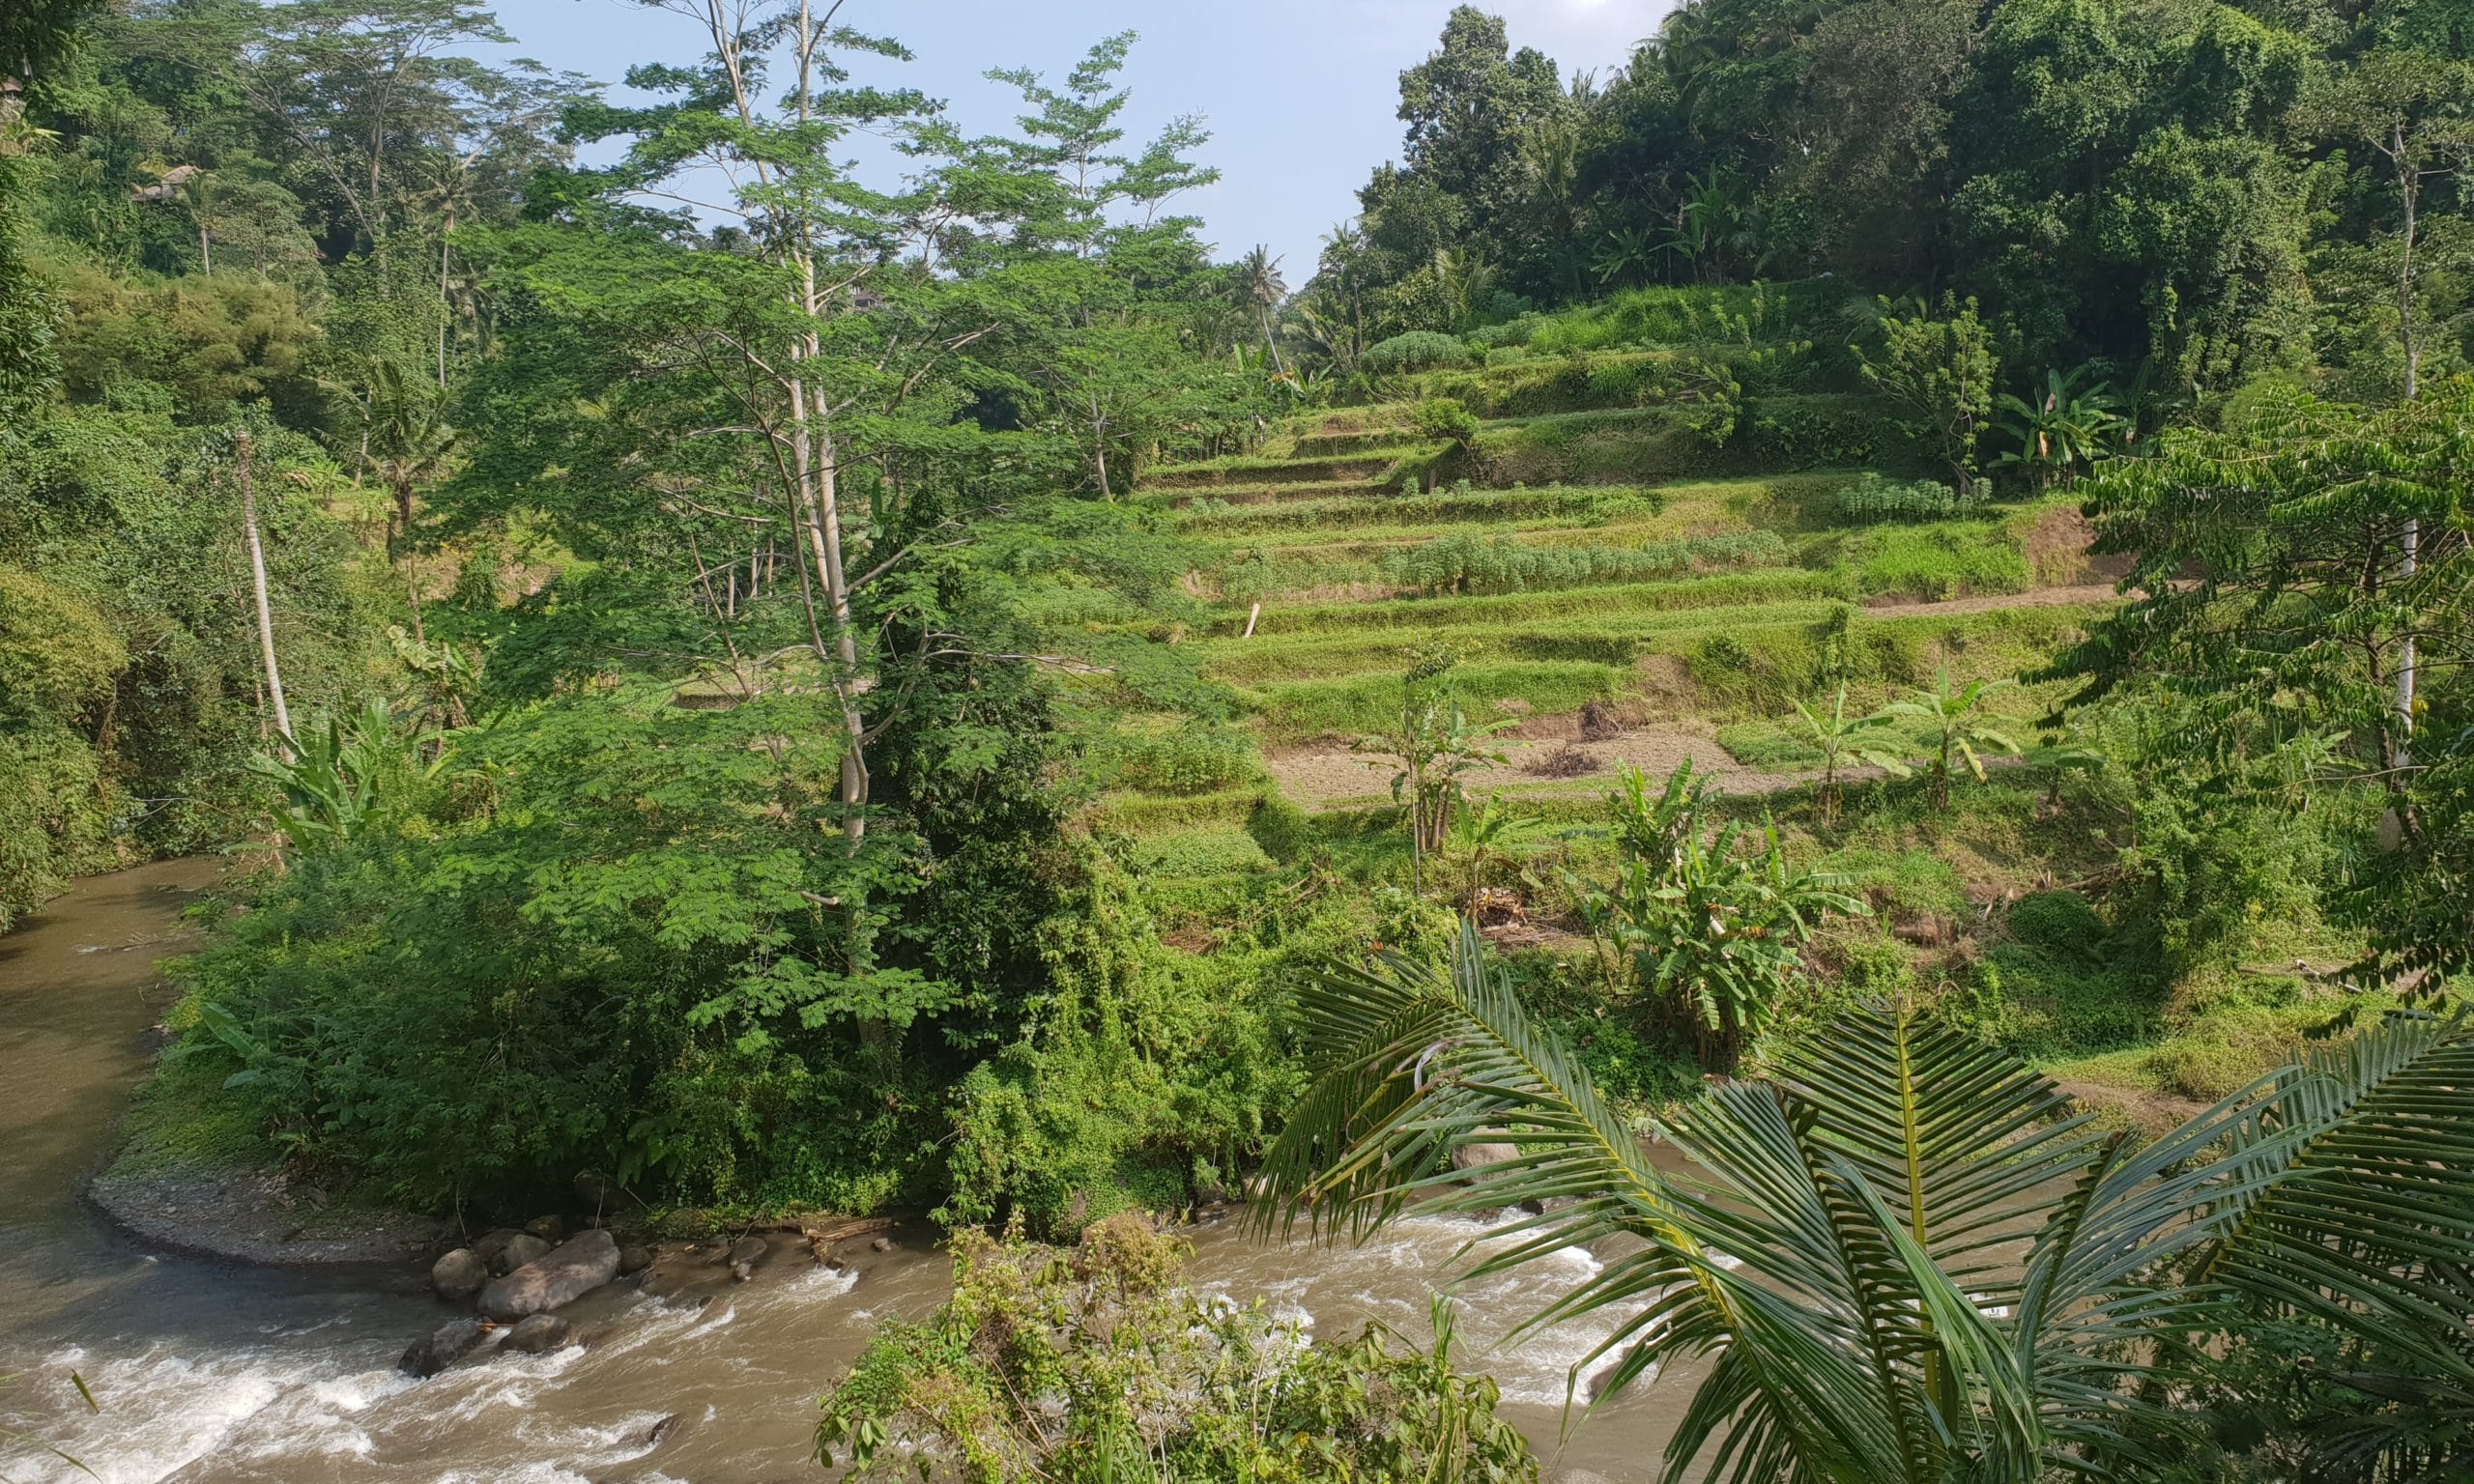 Ayung River - Access by stairs